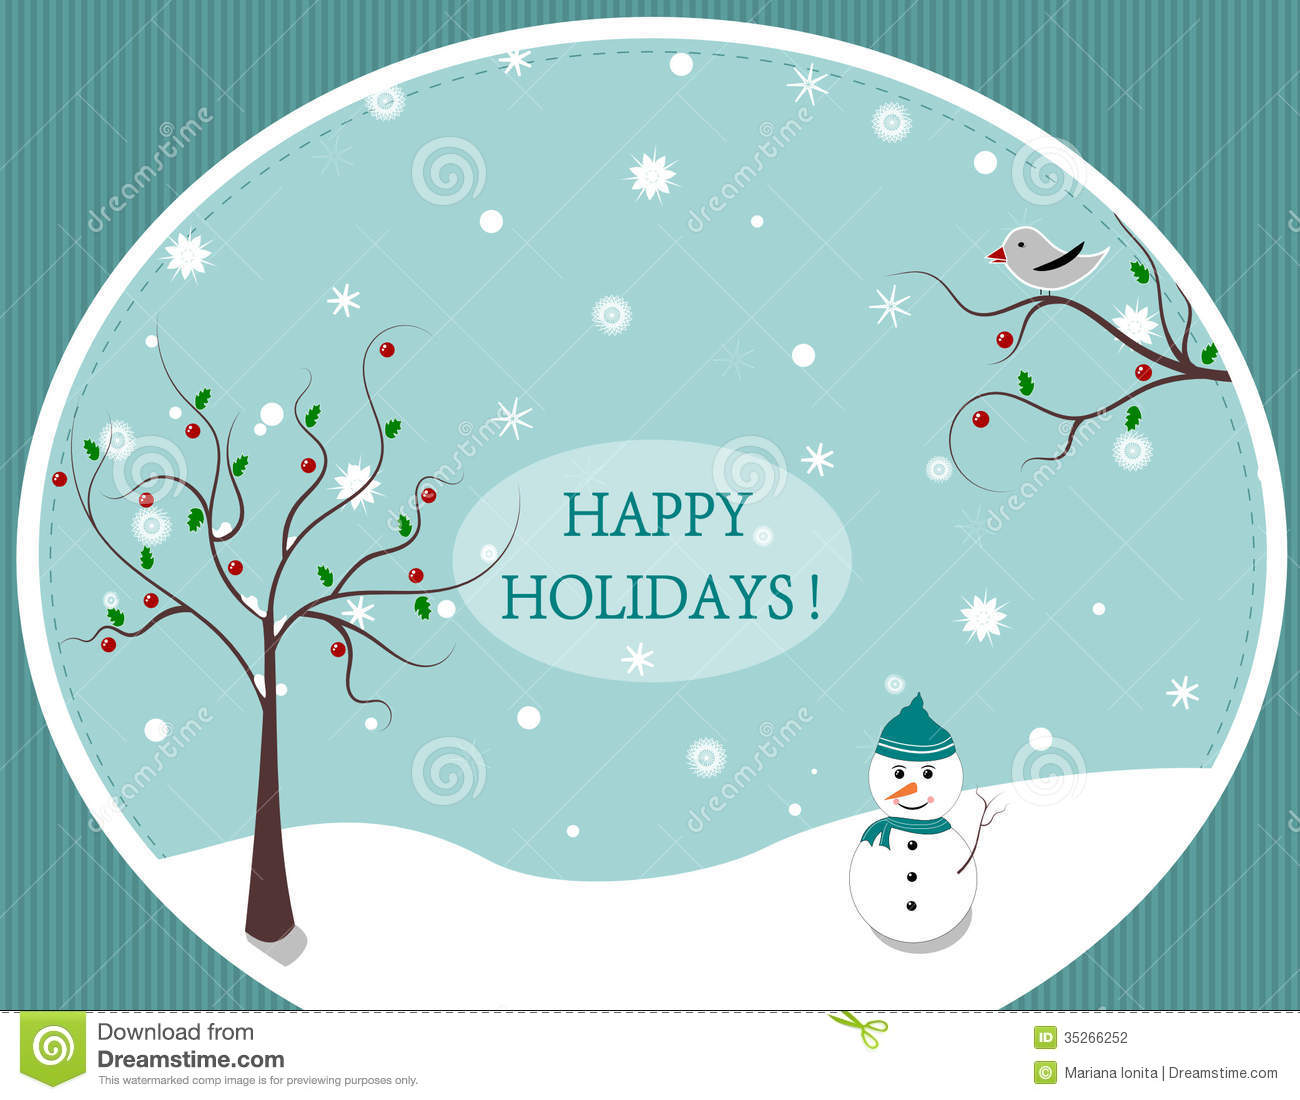 Happy Holidays Stock Illustration Illustration Of Happy 35266252